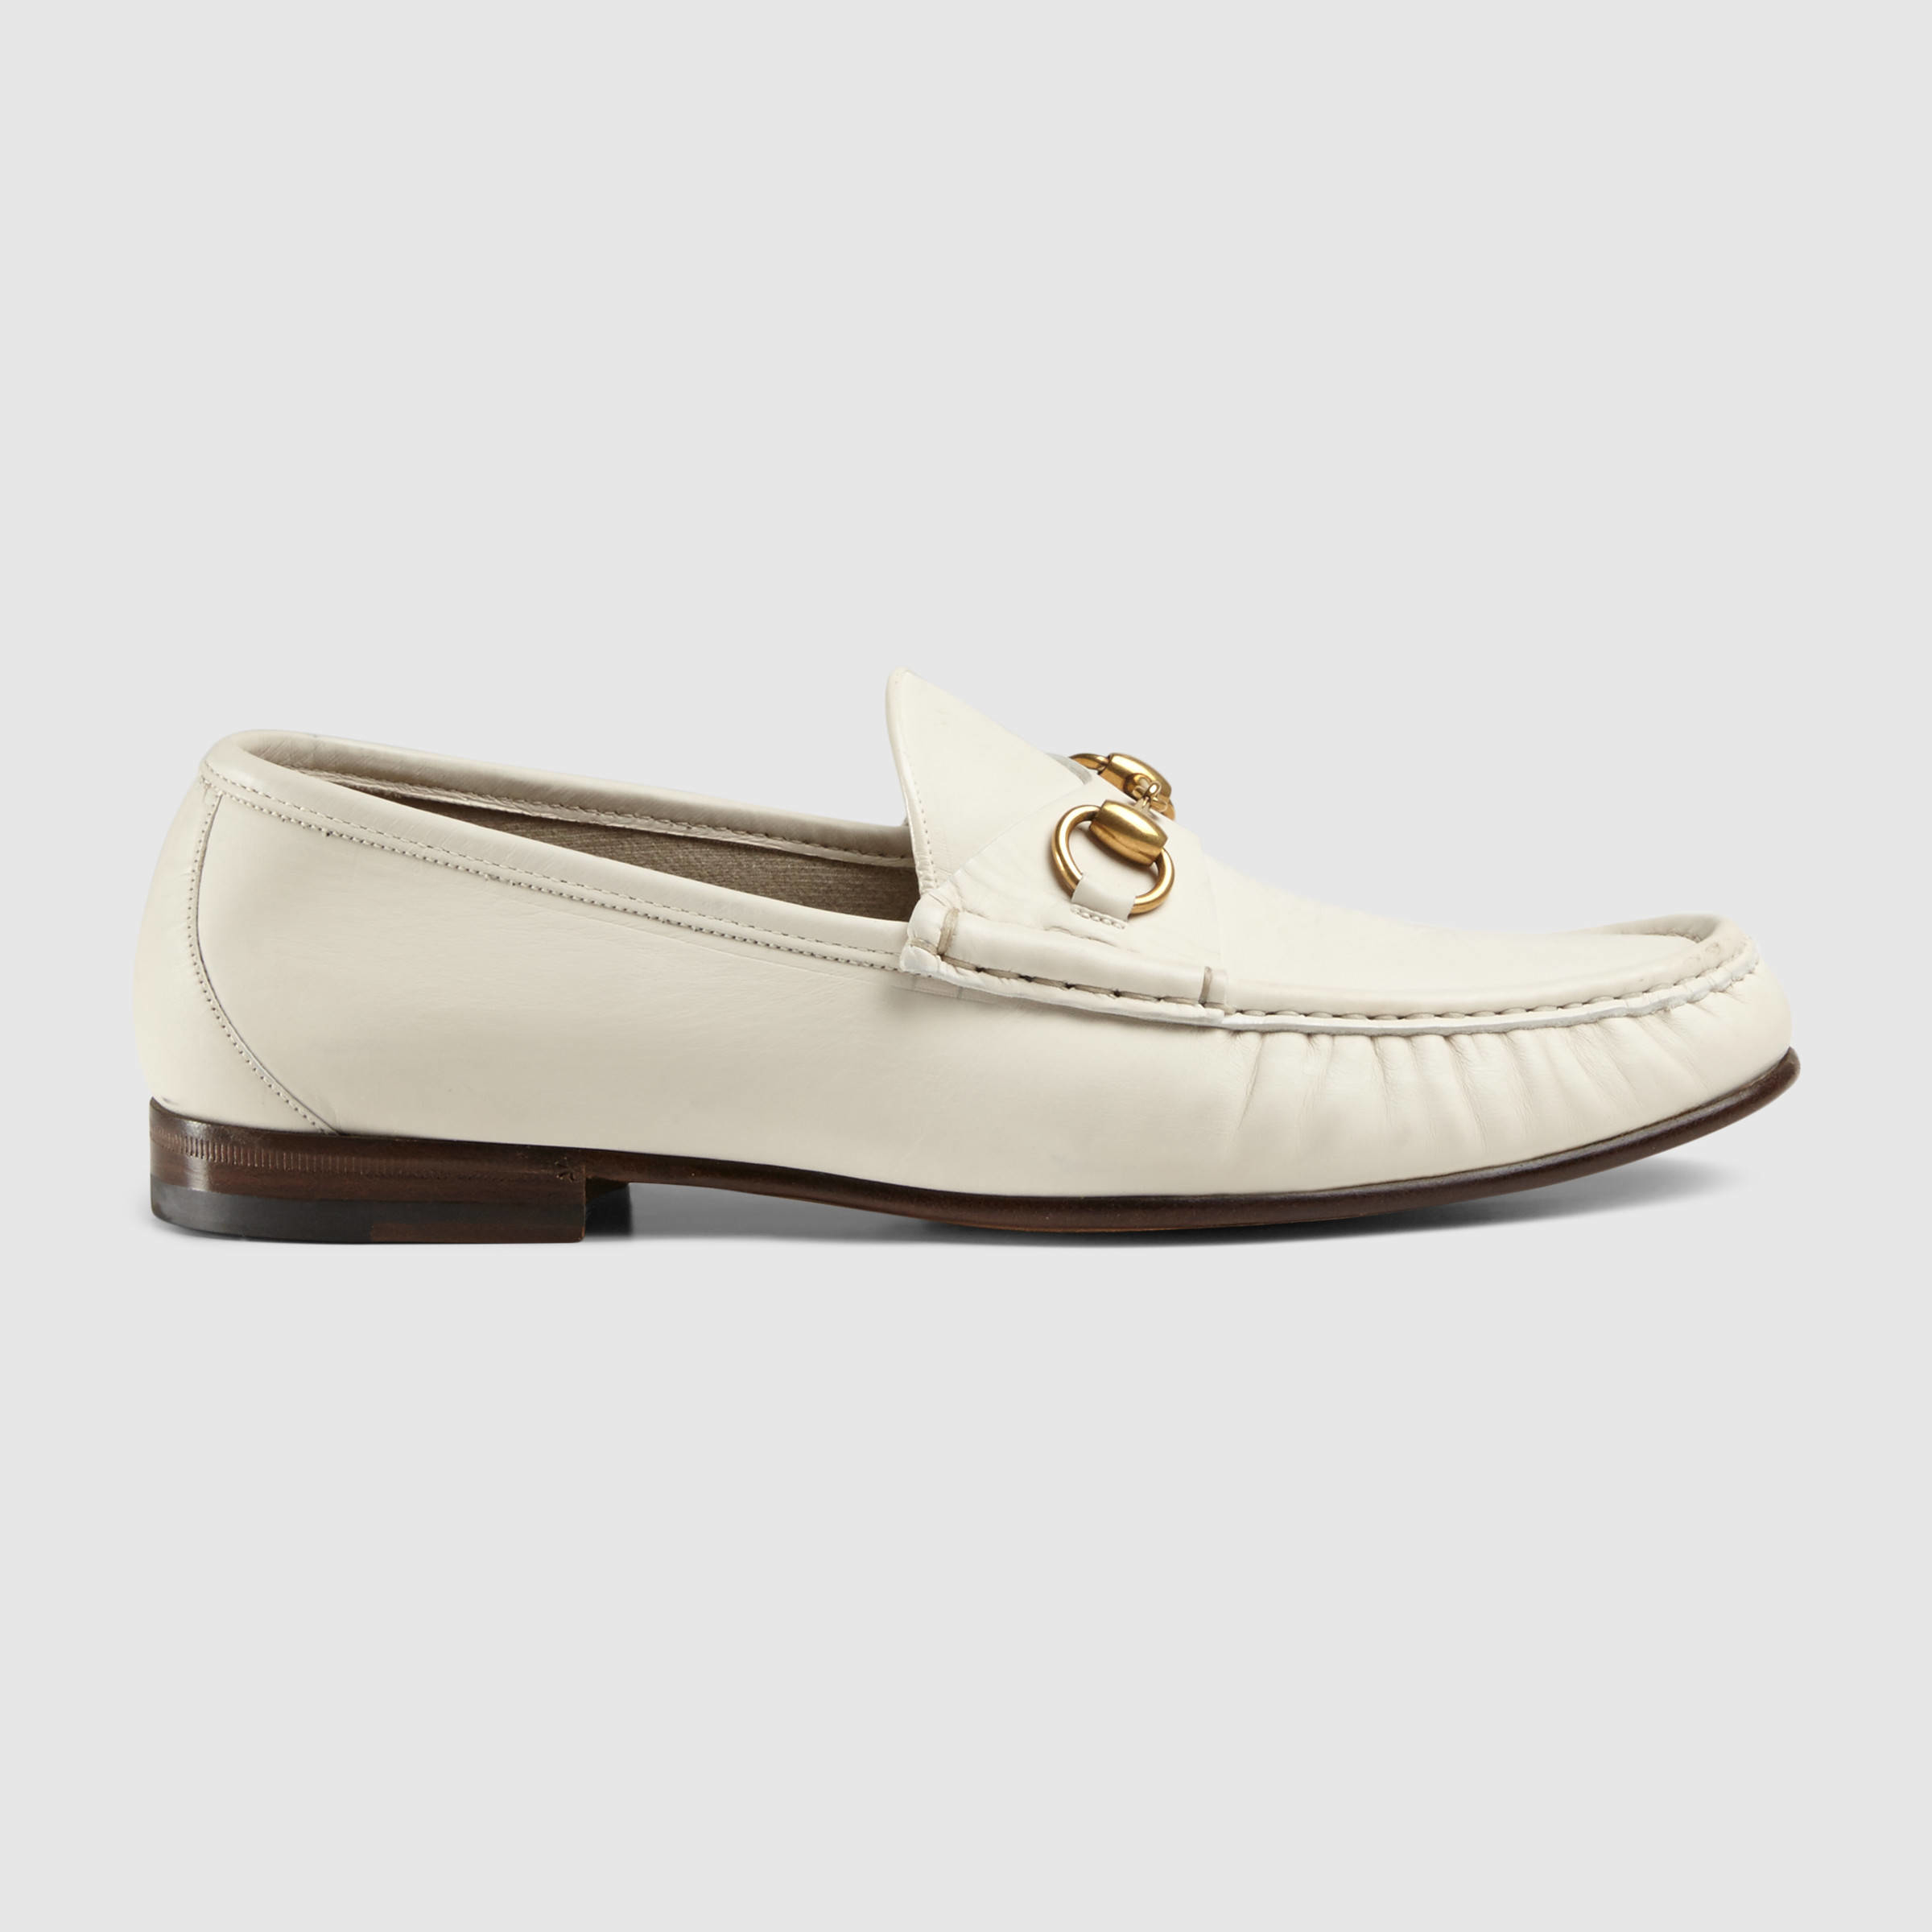 83923d0827e Gucci 1953 Horsebit Leather Loafer in White for Men - Lyst